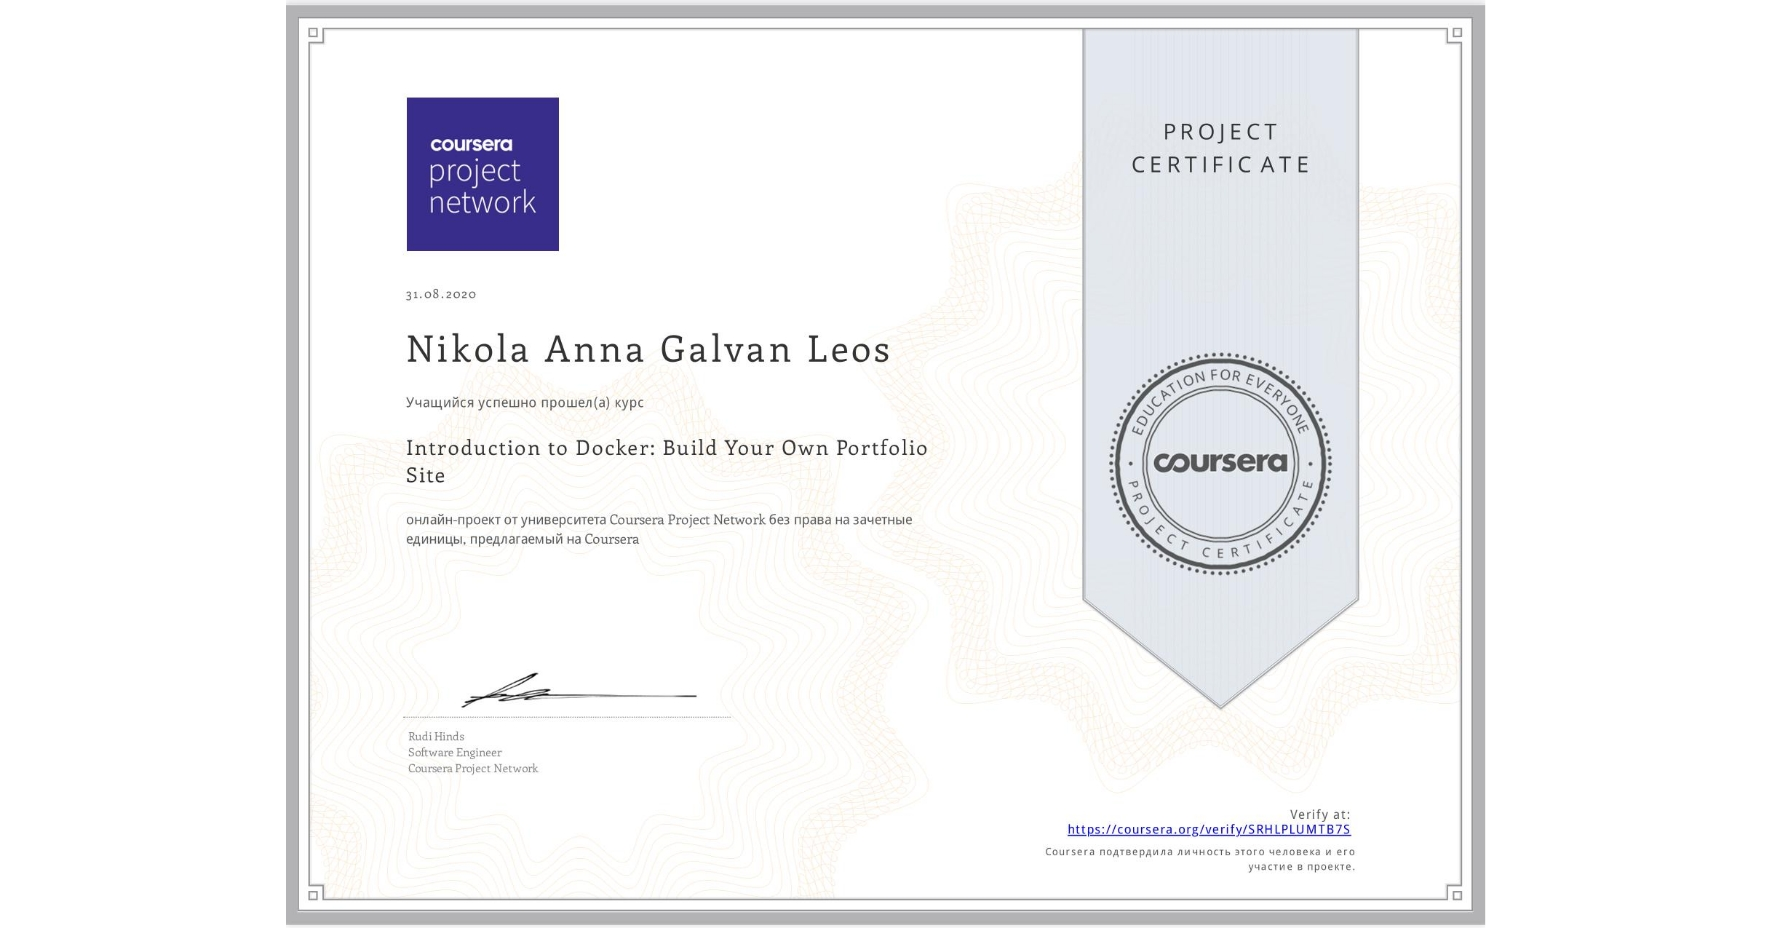 View certificate for Nikola Anna Galvan Leos, Introduction to Docker: Build Your Own Portfolio Site, an online non-credit course authorized by Coursera Project Network and offered through Coursera